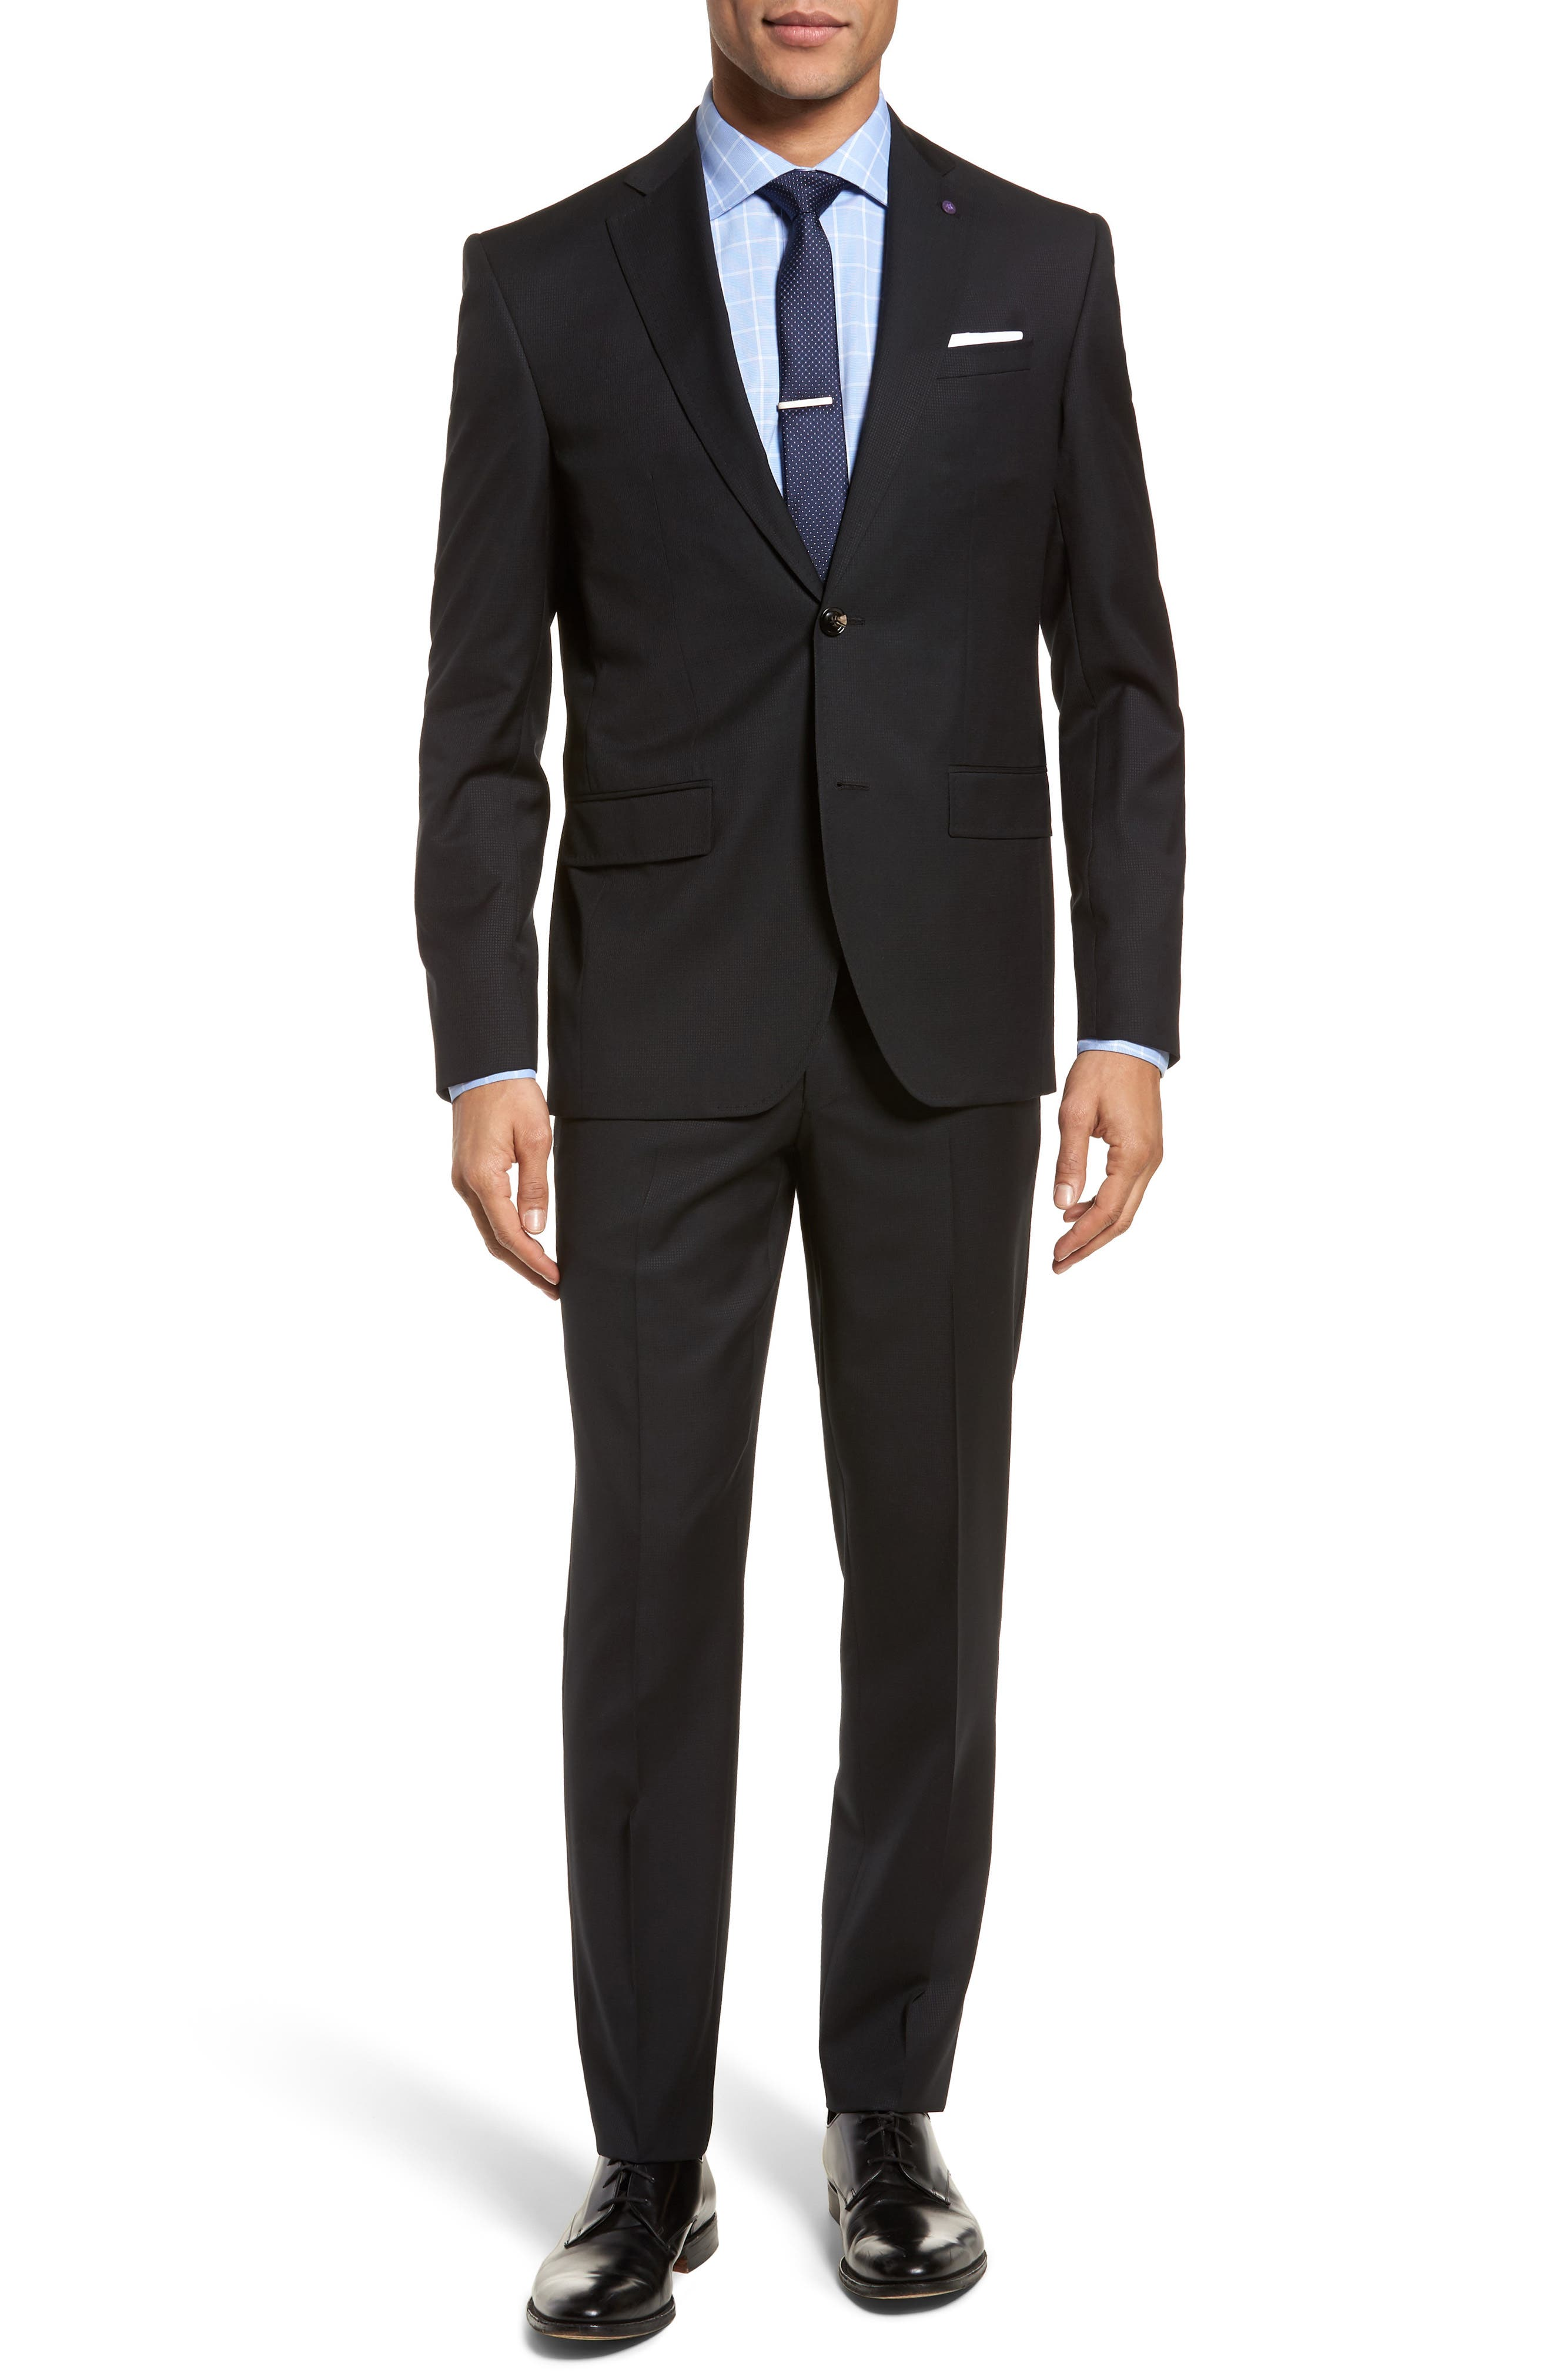 Roger Extra Slim Fit Solid Wool Suit,                             Main thumbnail 1, color,                             Black